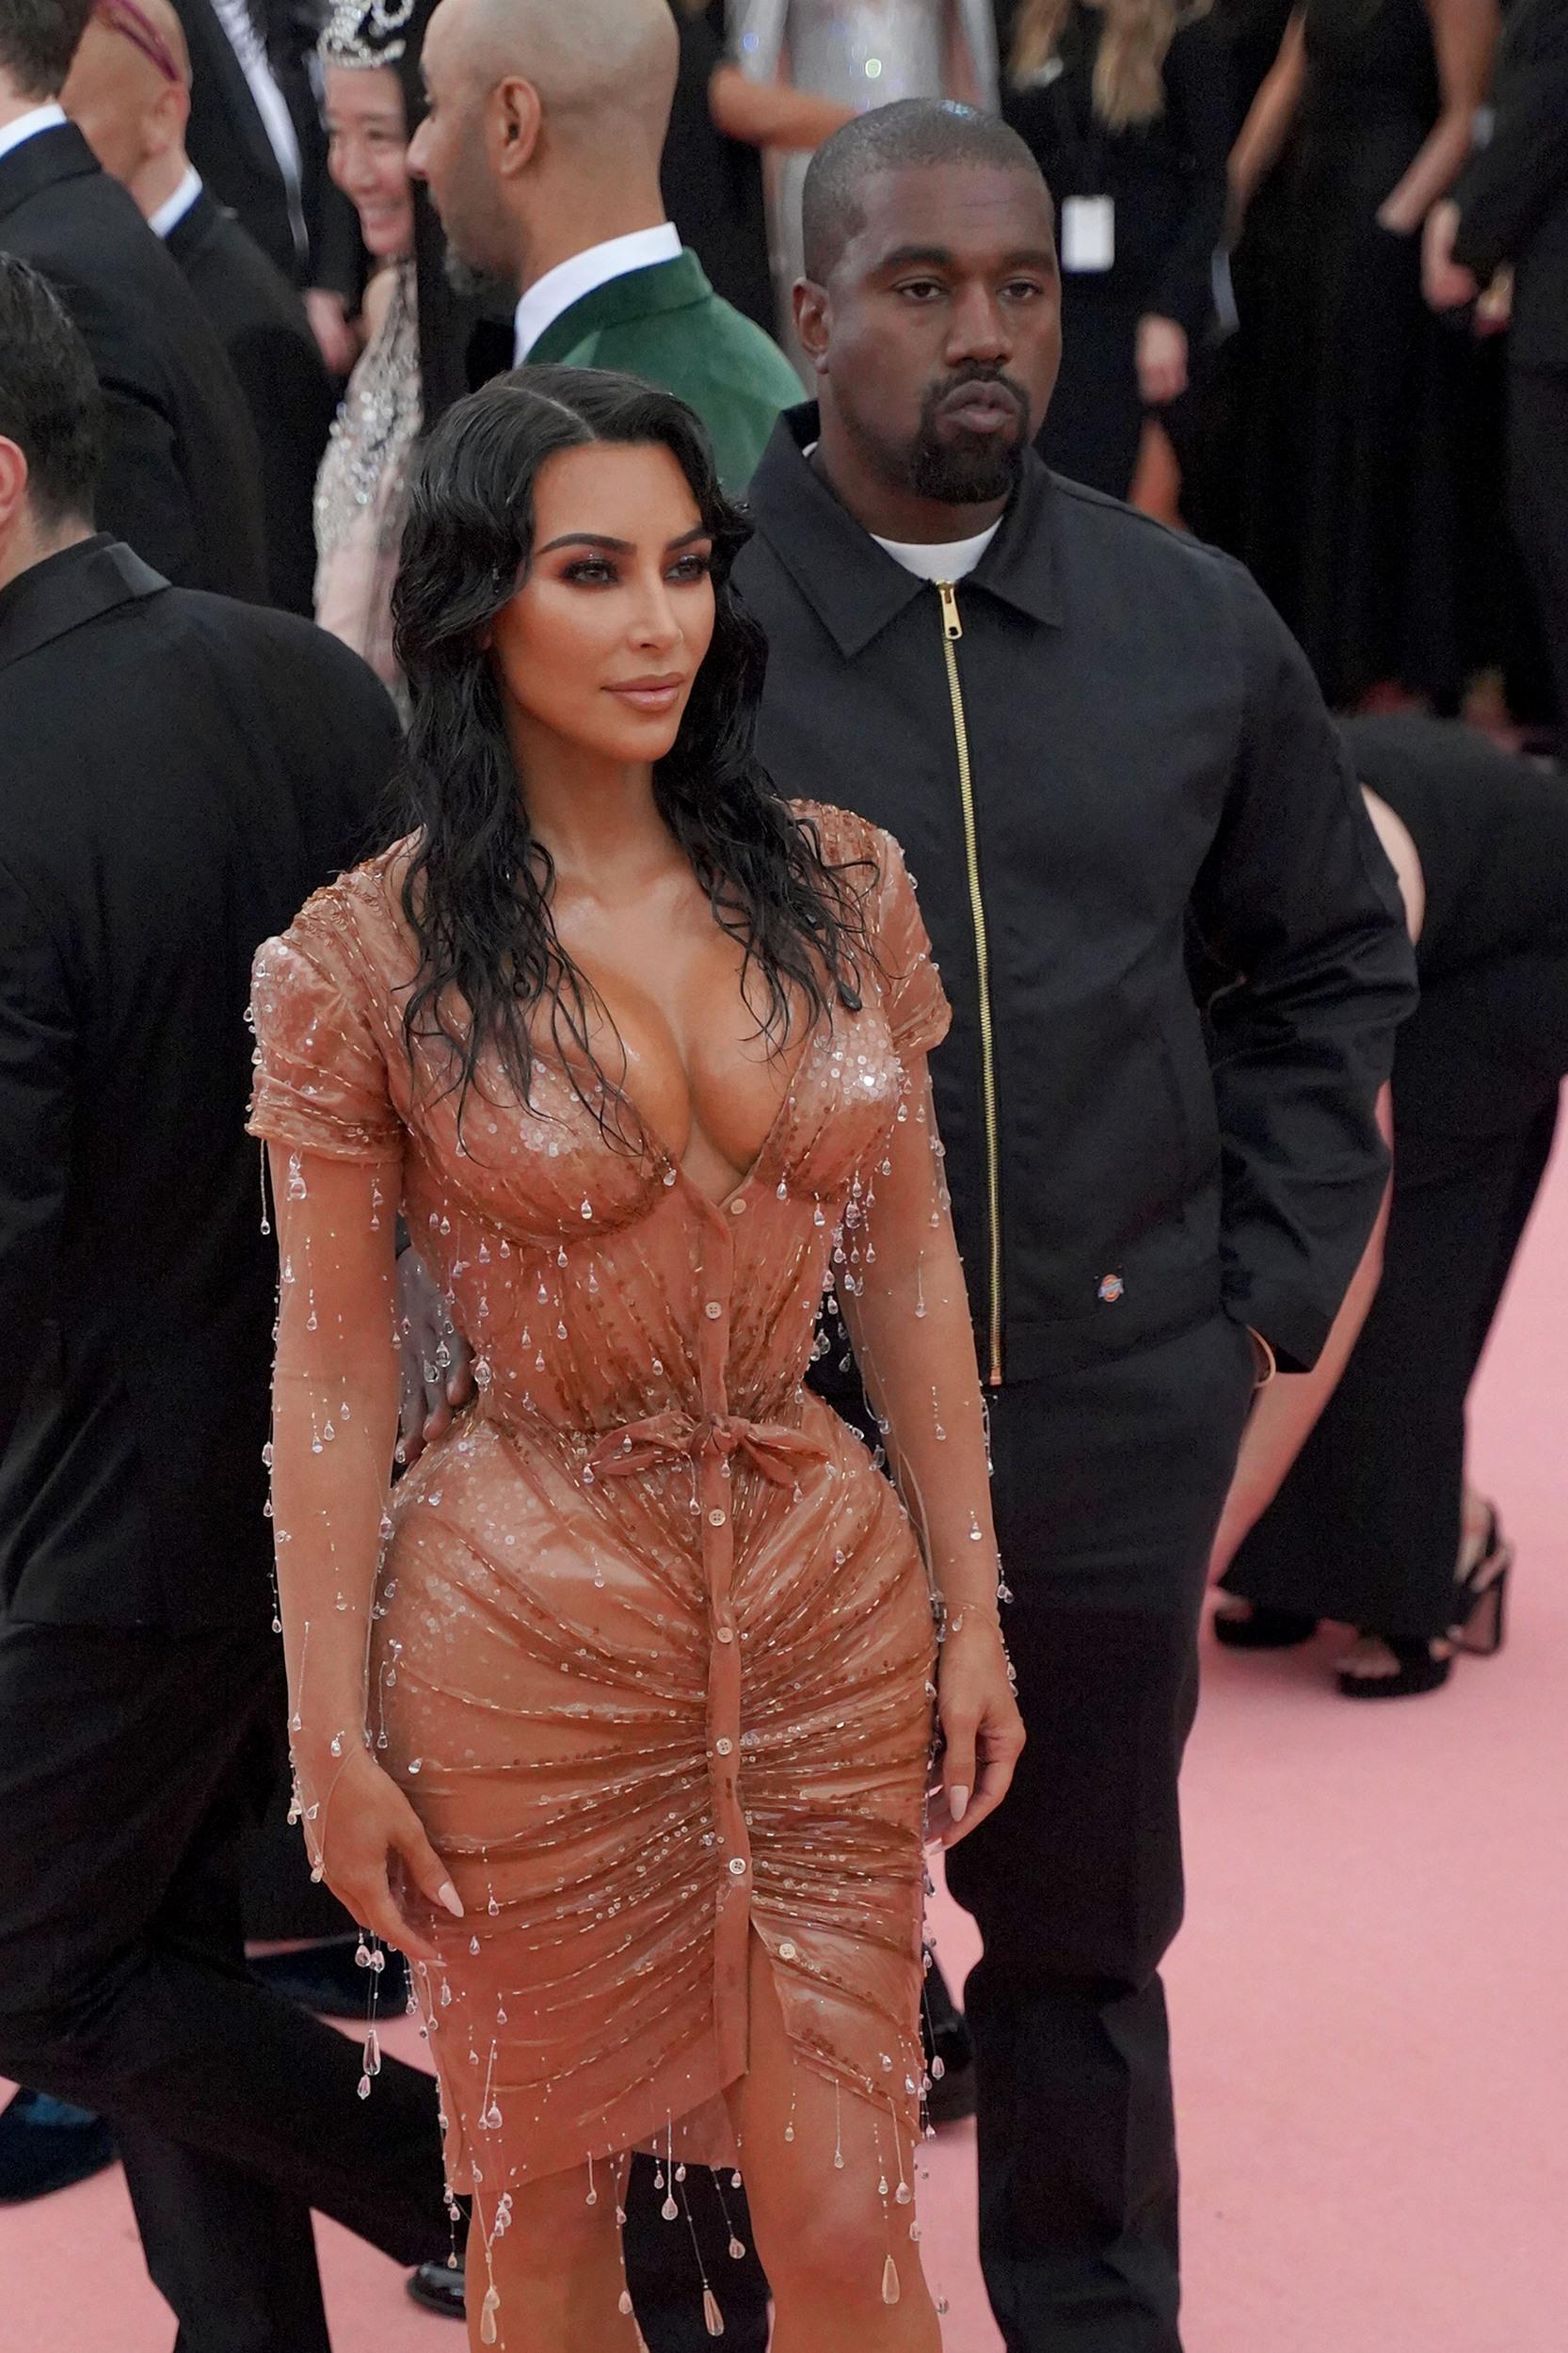 """NEW YORK, NY - MAY 6: Kanye West and Kim Kardashian West attend The Metropolitan Museum Of Art's 2019 Costume Institute Benefit """"Camp: Notes On Fashion"""" at Metropolitan Museum of Art on May 6, 2019 in New York City. (Photo by Sean Zanni/Patrick McMullan via Getty Images)"""